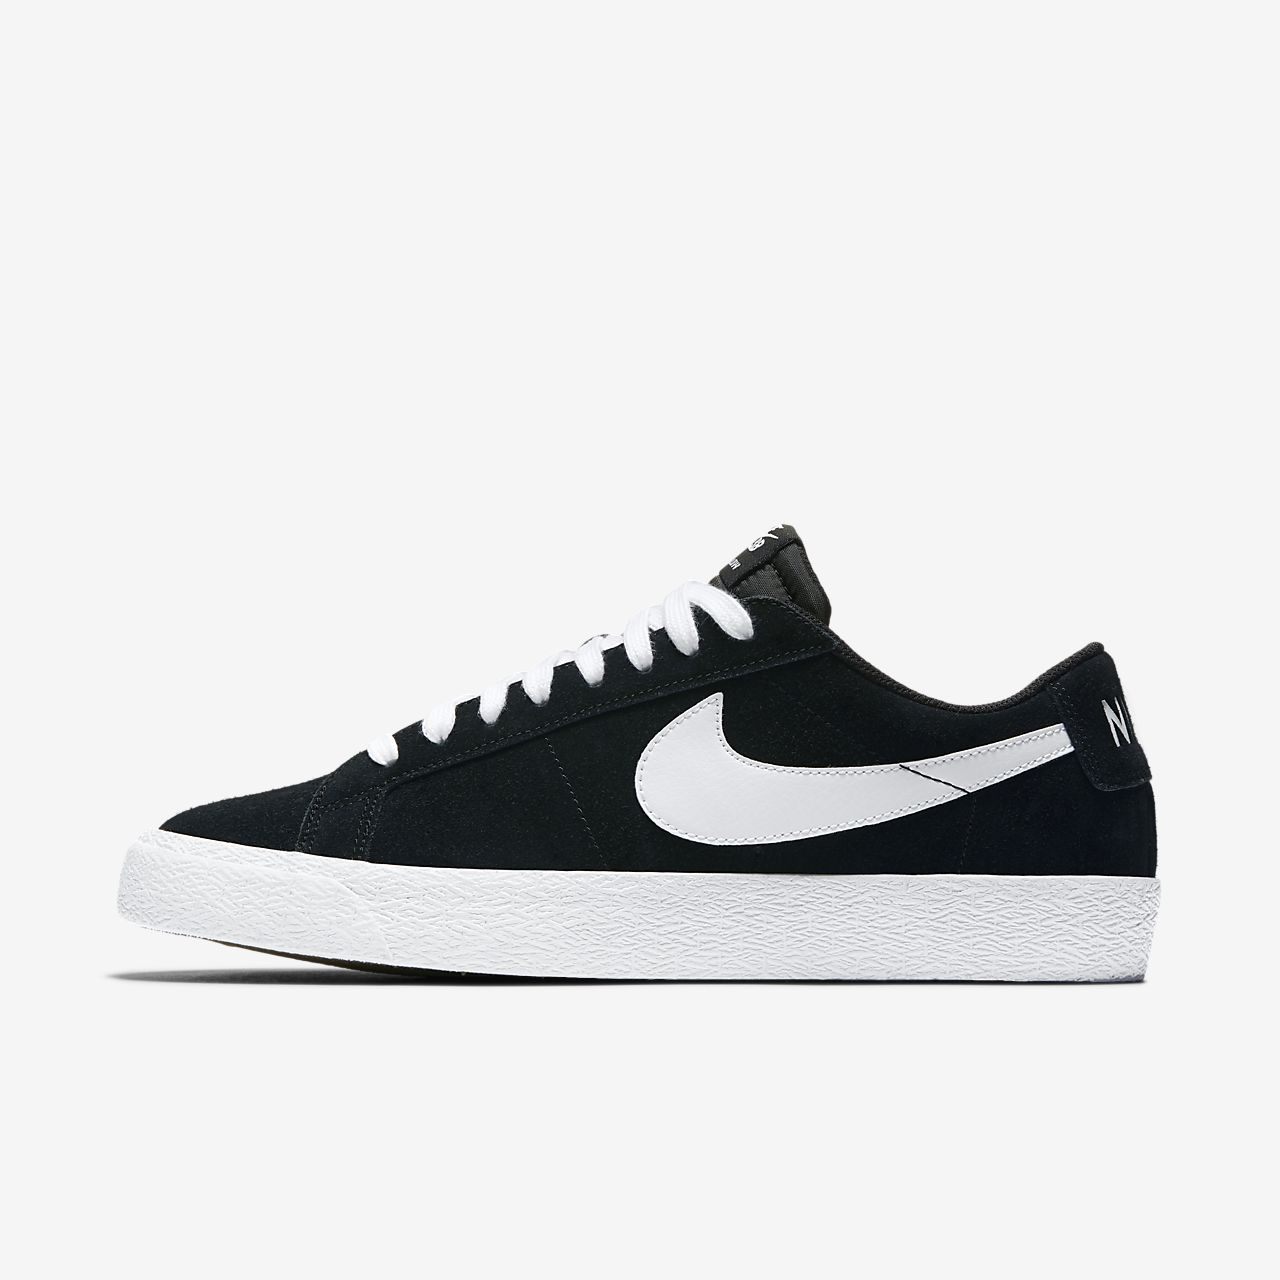 separation shoes d539a c503d ... Nike SB Blazer Zoom Low Men s Skateboarding Shoe